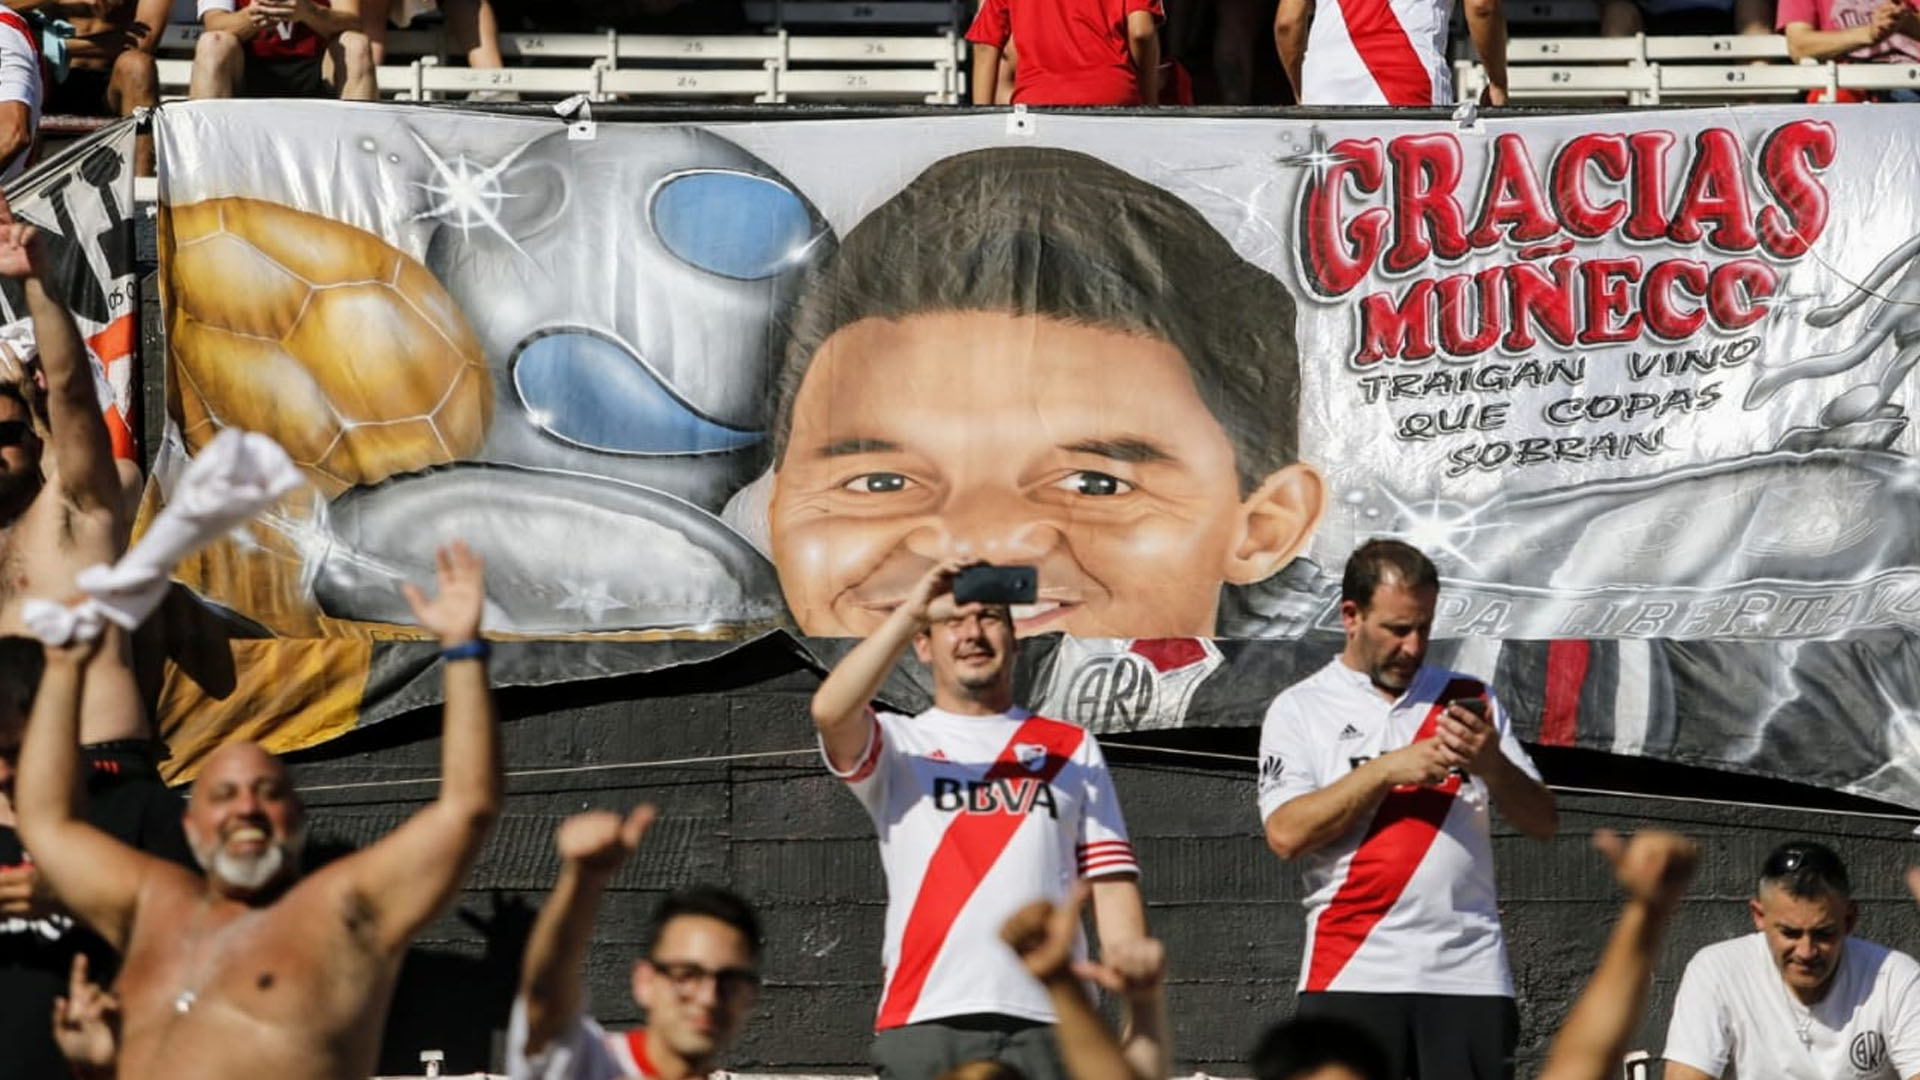 One by one, the players were bathed in emotions. The first one that emerged from the tunnel was Nahuel Gallardo, the son of a great idol, who in the previous conquest, in 2015 was in Inferiores, and today he had the pleasure of enjoying the event as a member of the band.